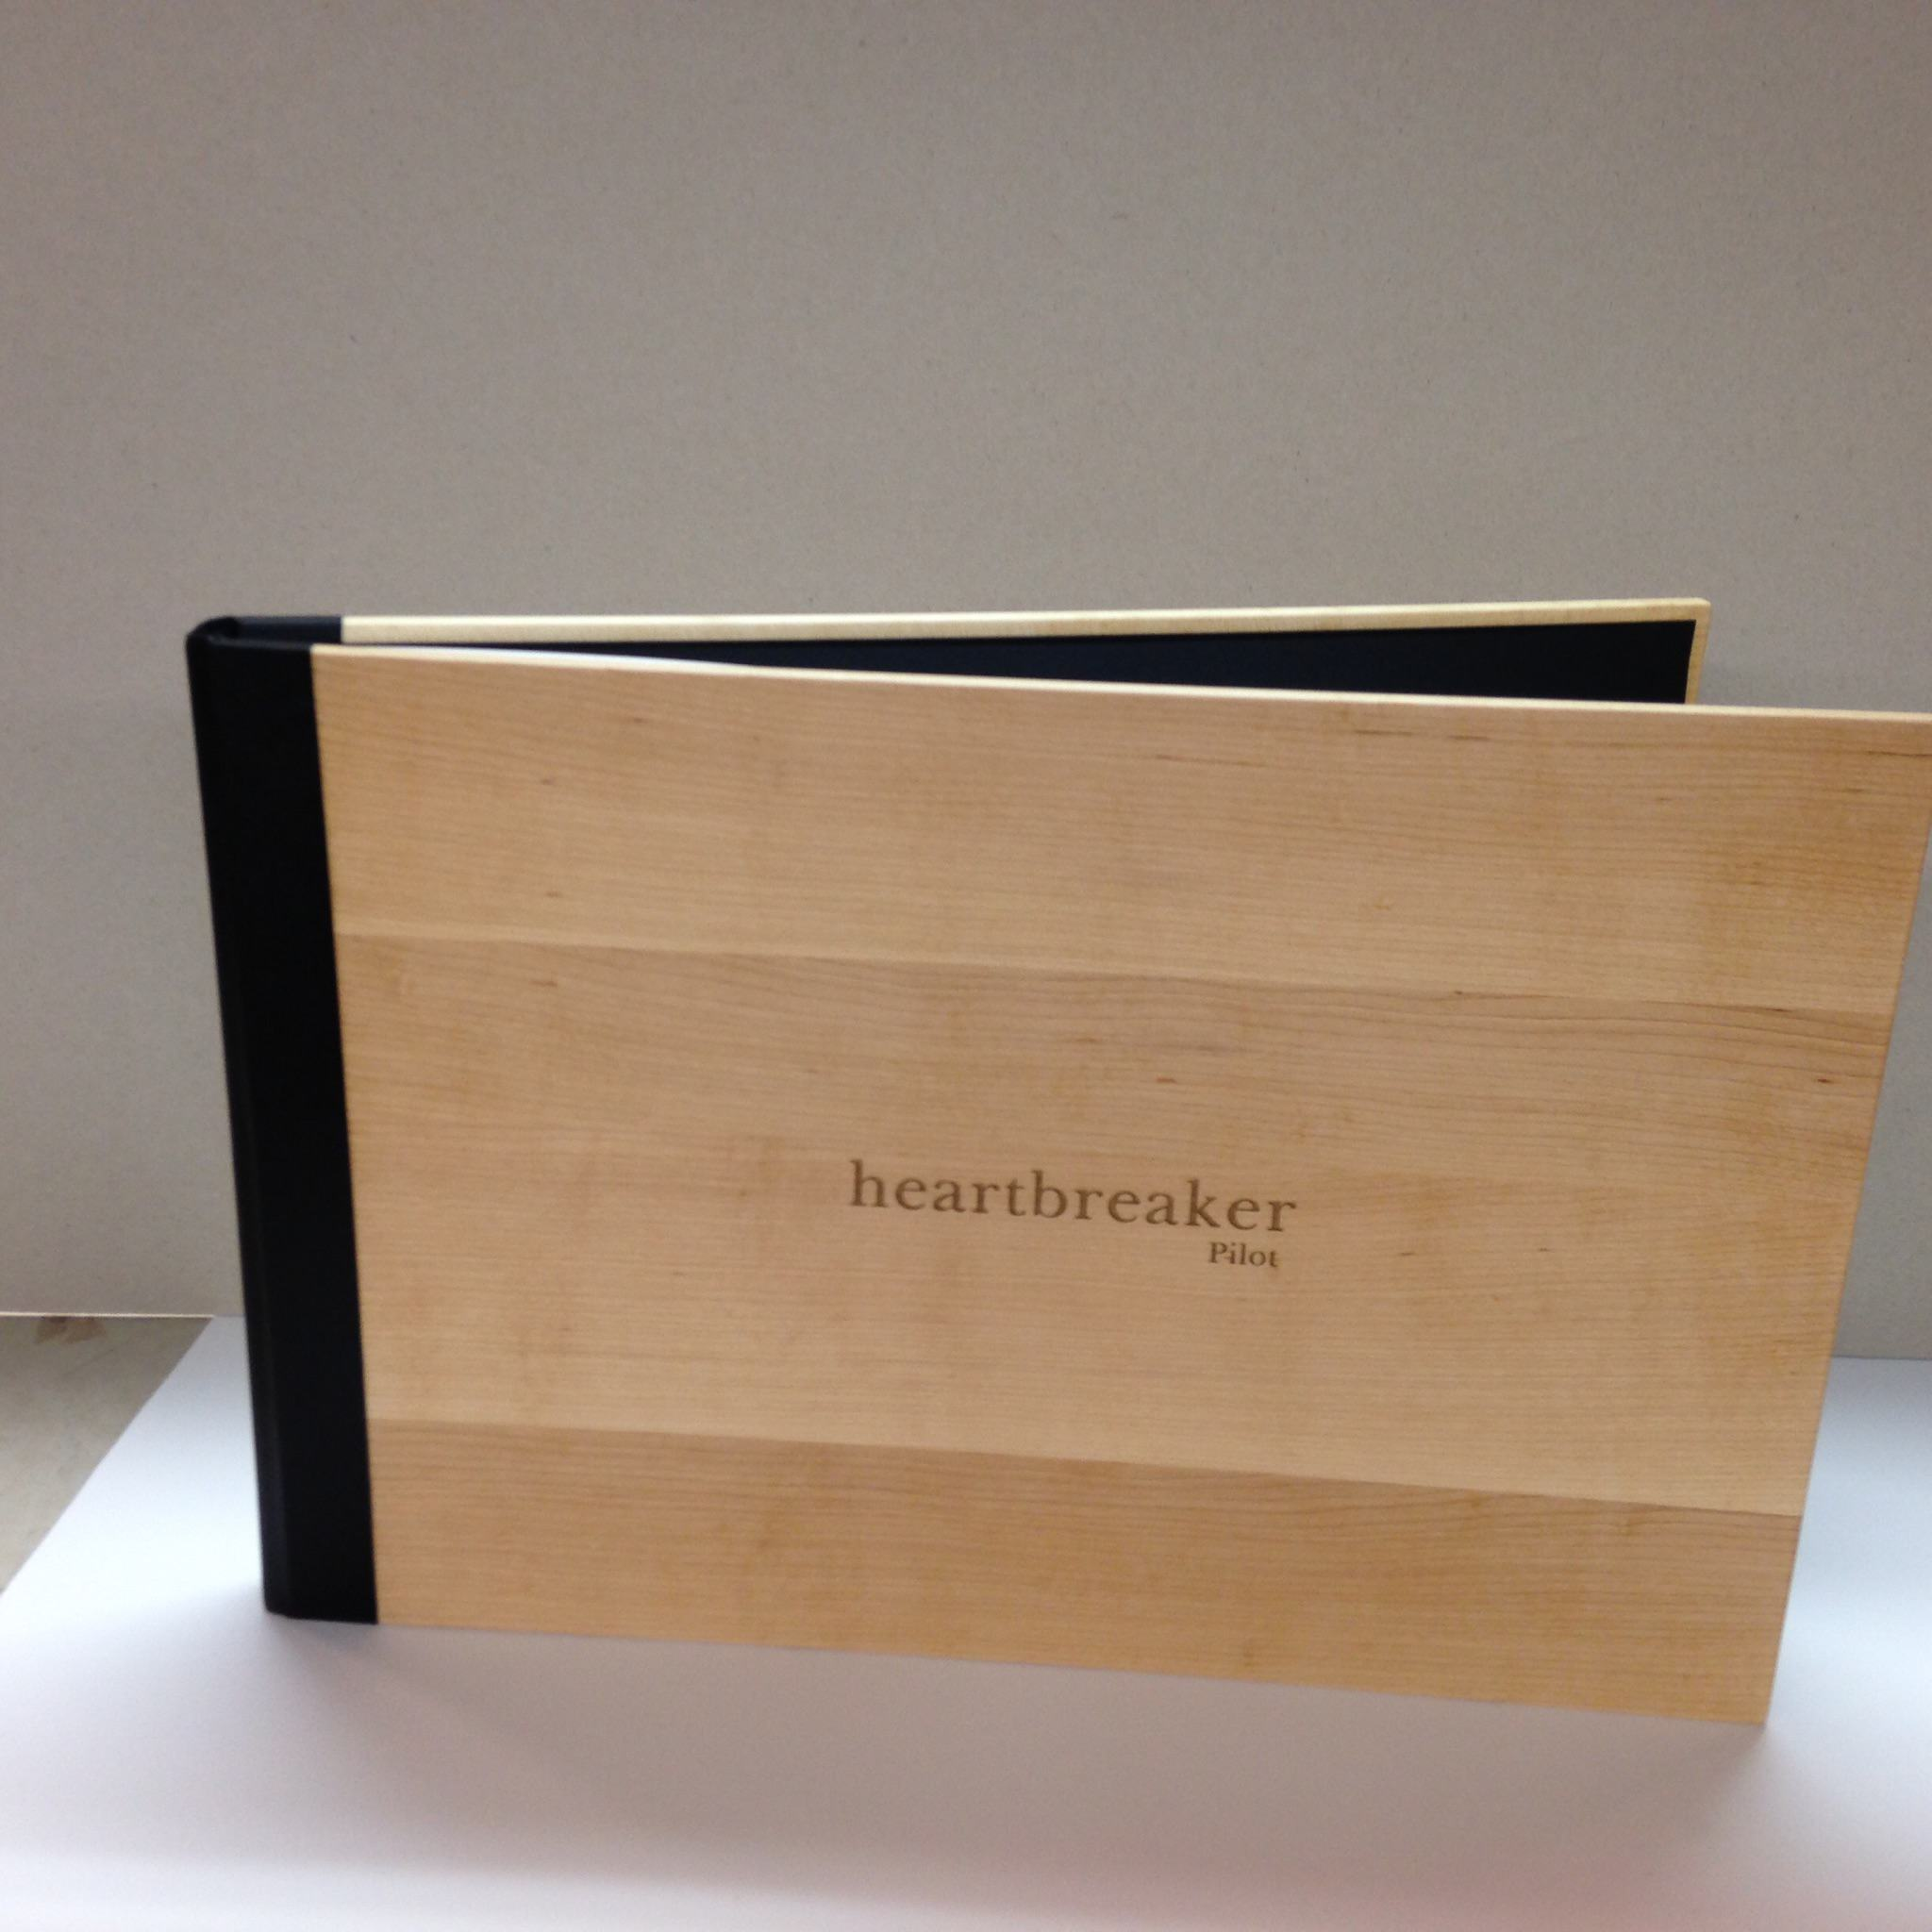 Sample of wood and leather binding